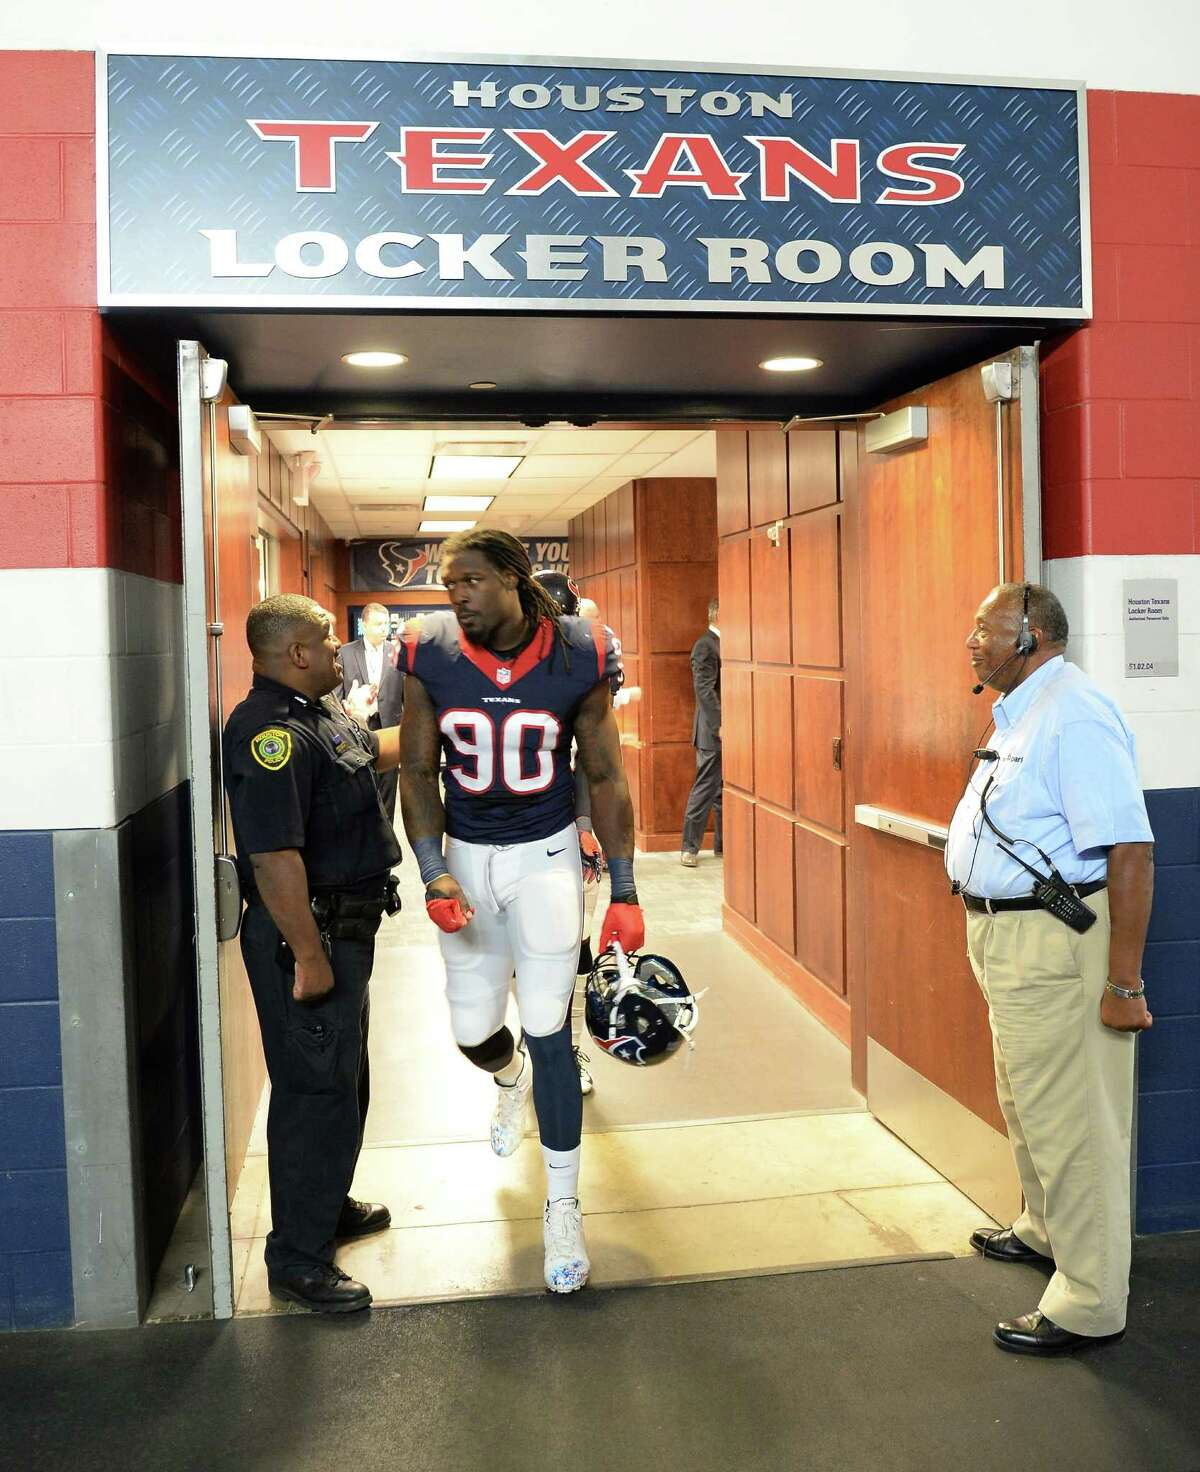 Houston Texans outside linebacker Jadeveon Clowney (90) leaves the locker room before an NFL football game Sunday, Sept. 27, 2015, in Houston.